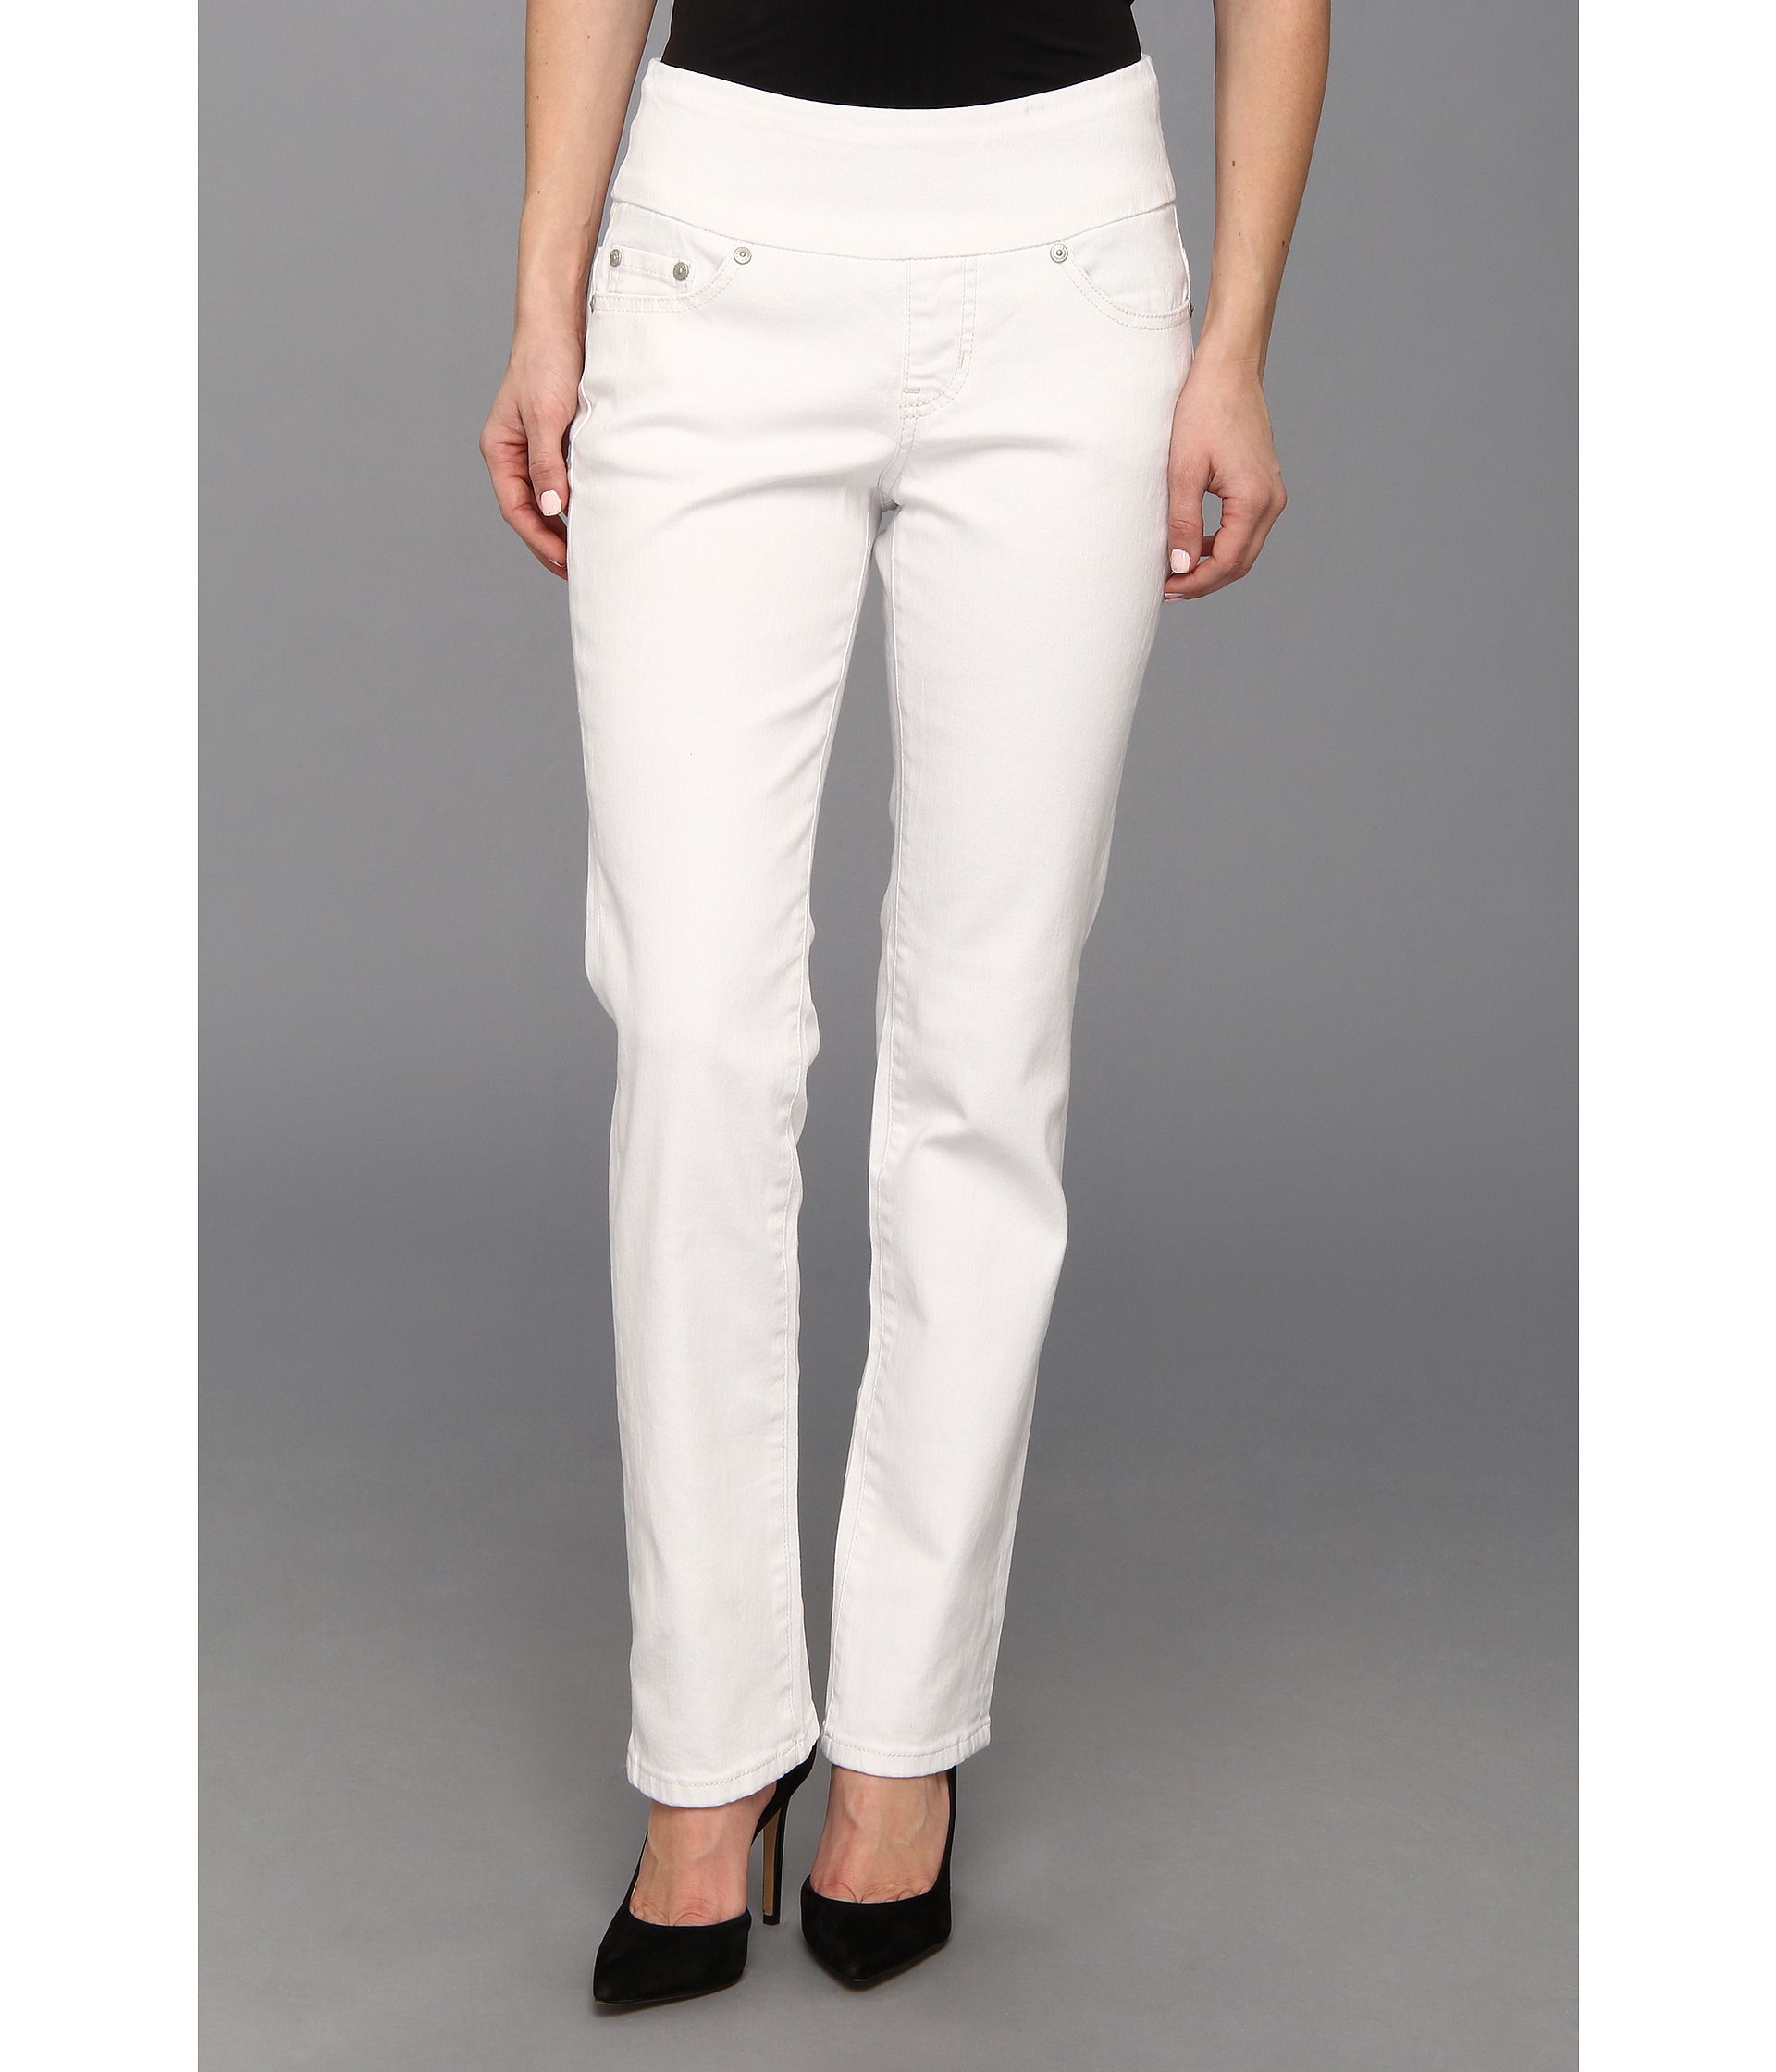 Jag Jeans Petite Petite Peri Pull-On Straight Jean in White - 6pm.com